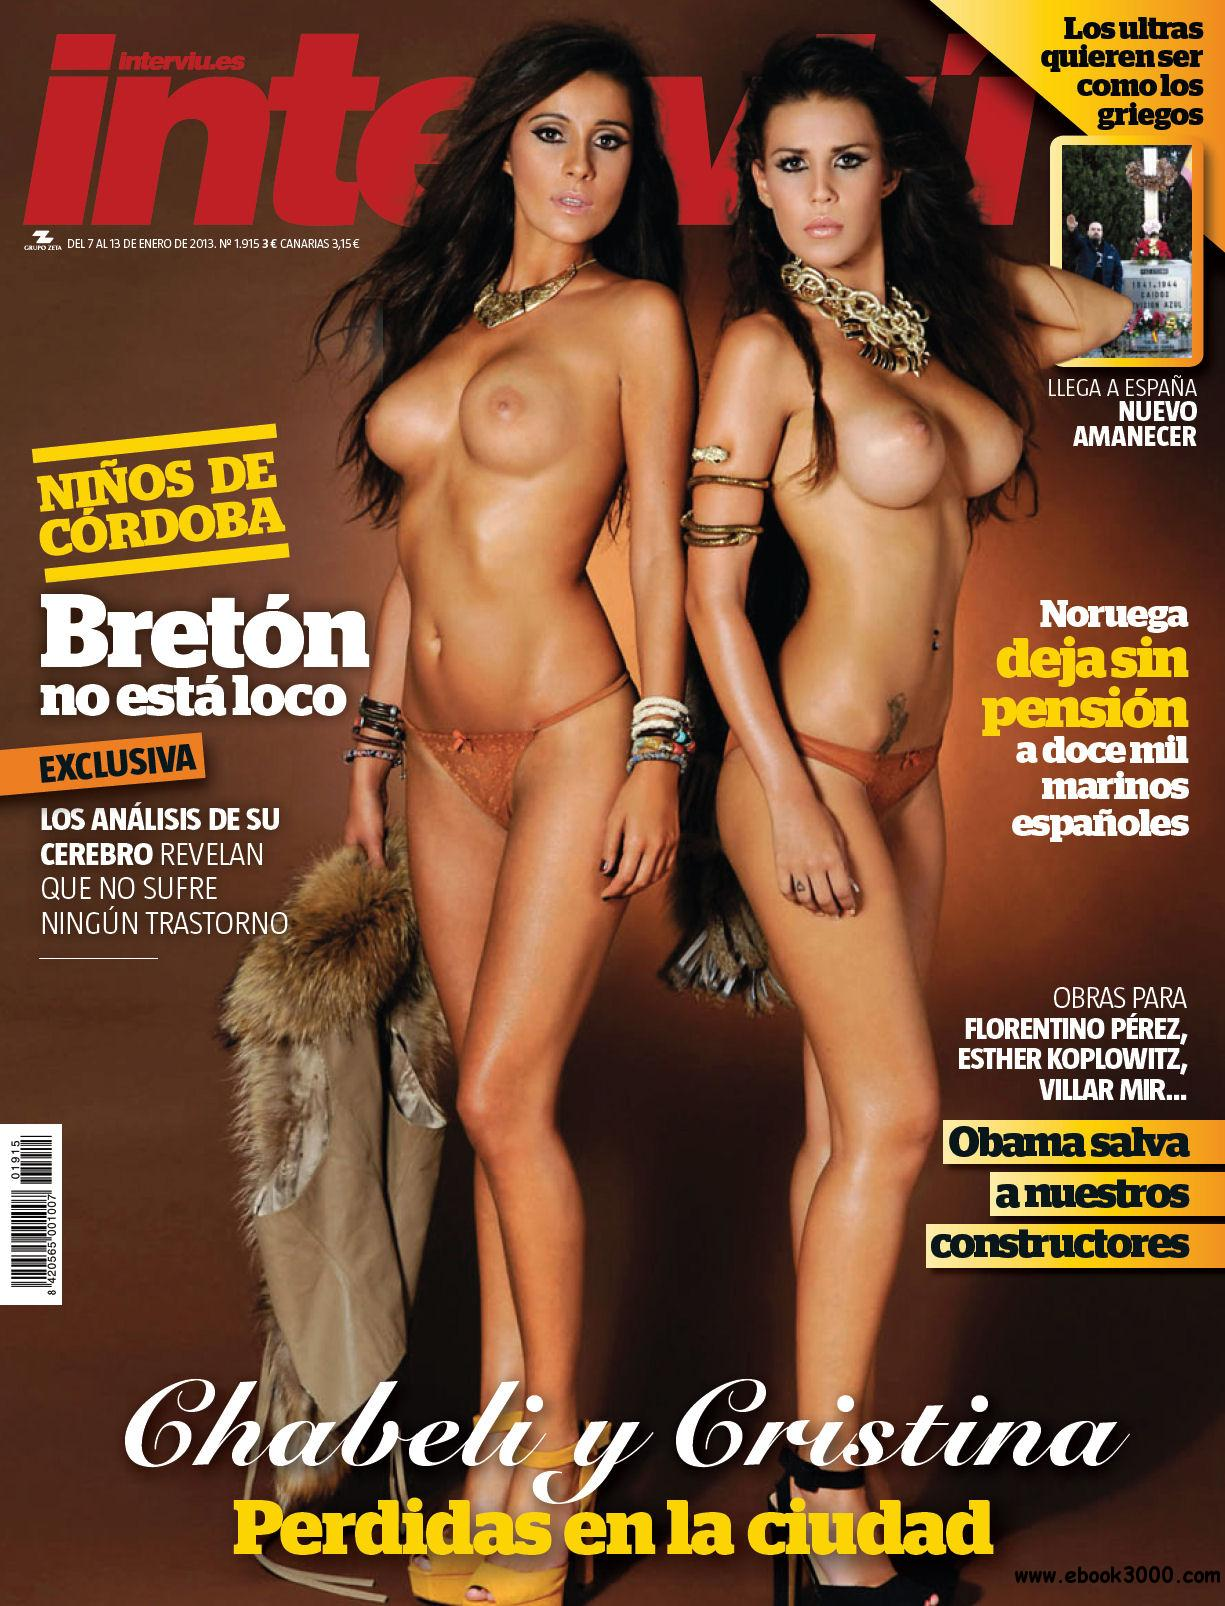 Interviu - 07-13 Enero 2013 free download